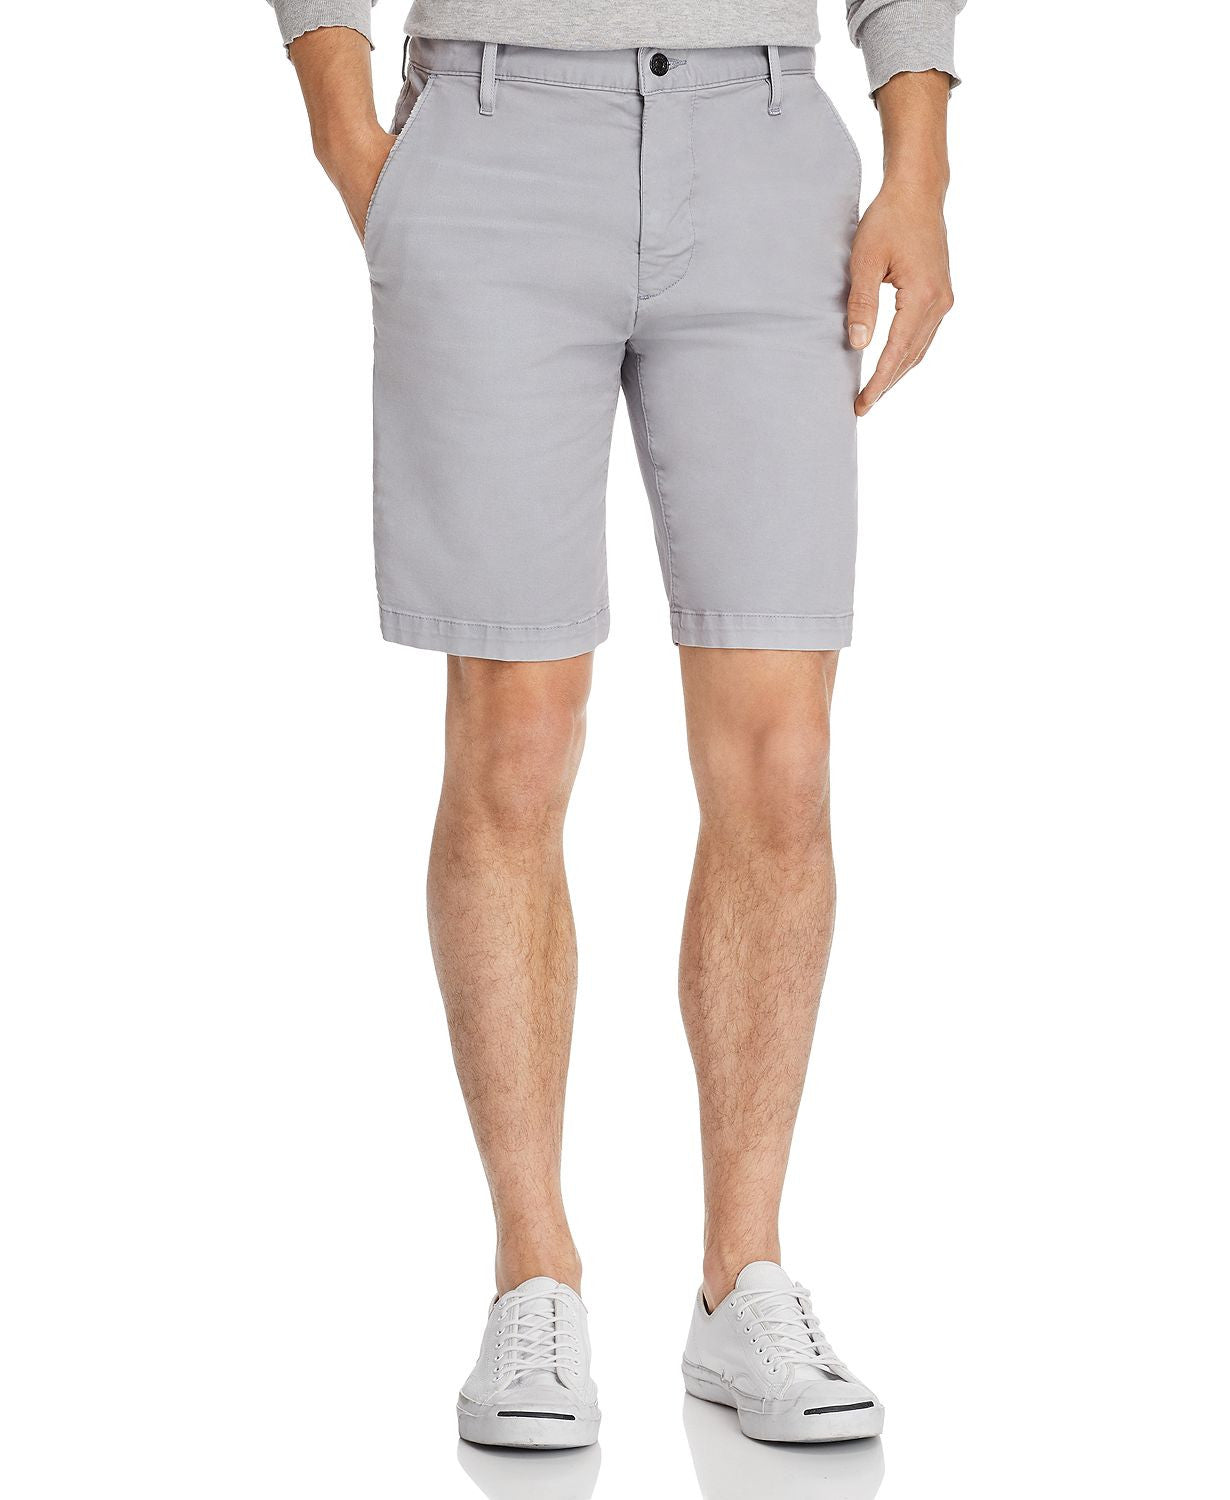 7 For All Mankind Slim Fit Chino Shorts Stone